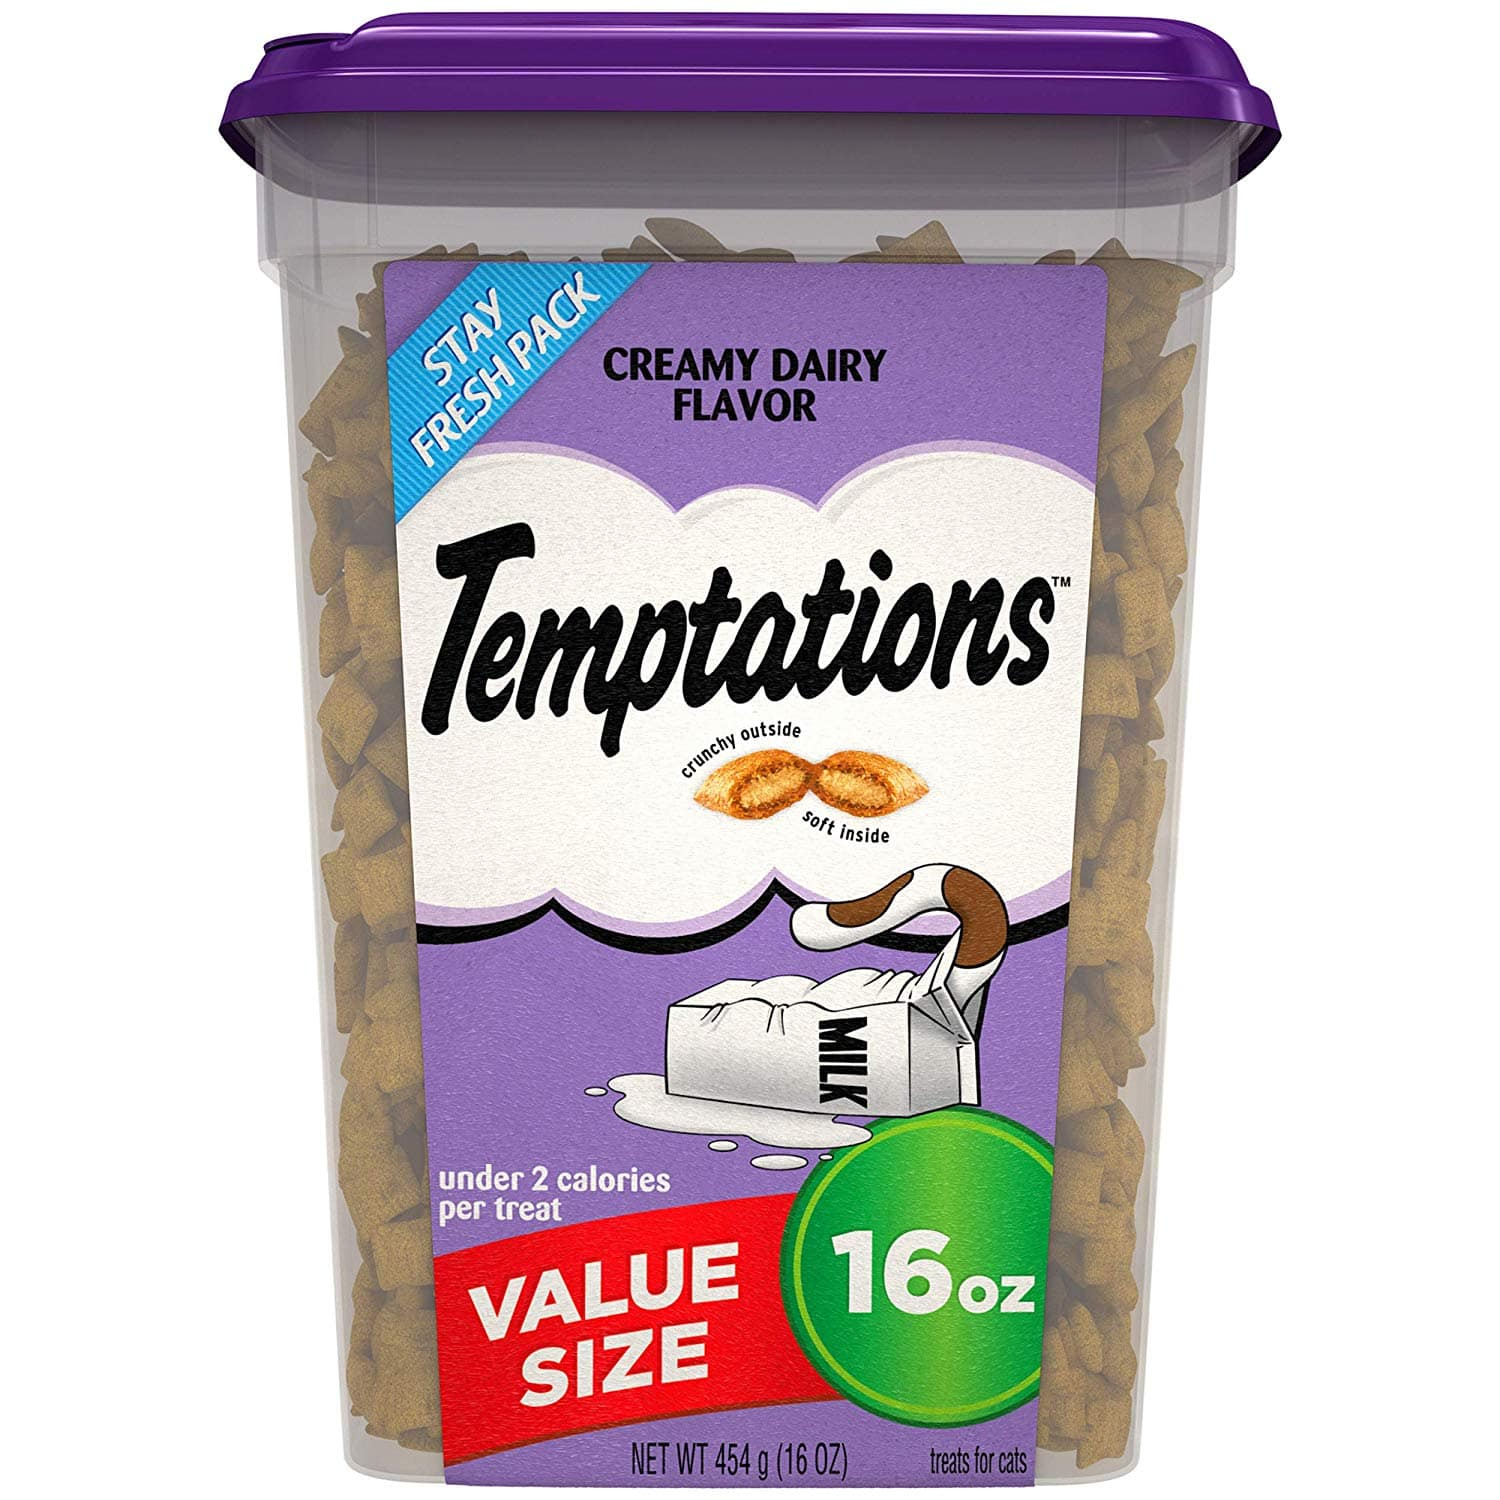 Temptation Cat Treats, 16oz, many varieties, as low as $5.59 with Subscribe and Save